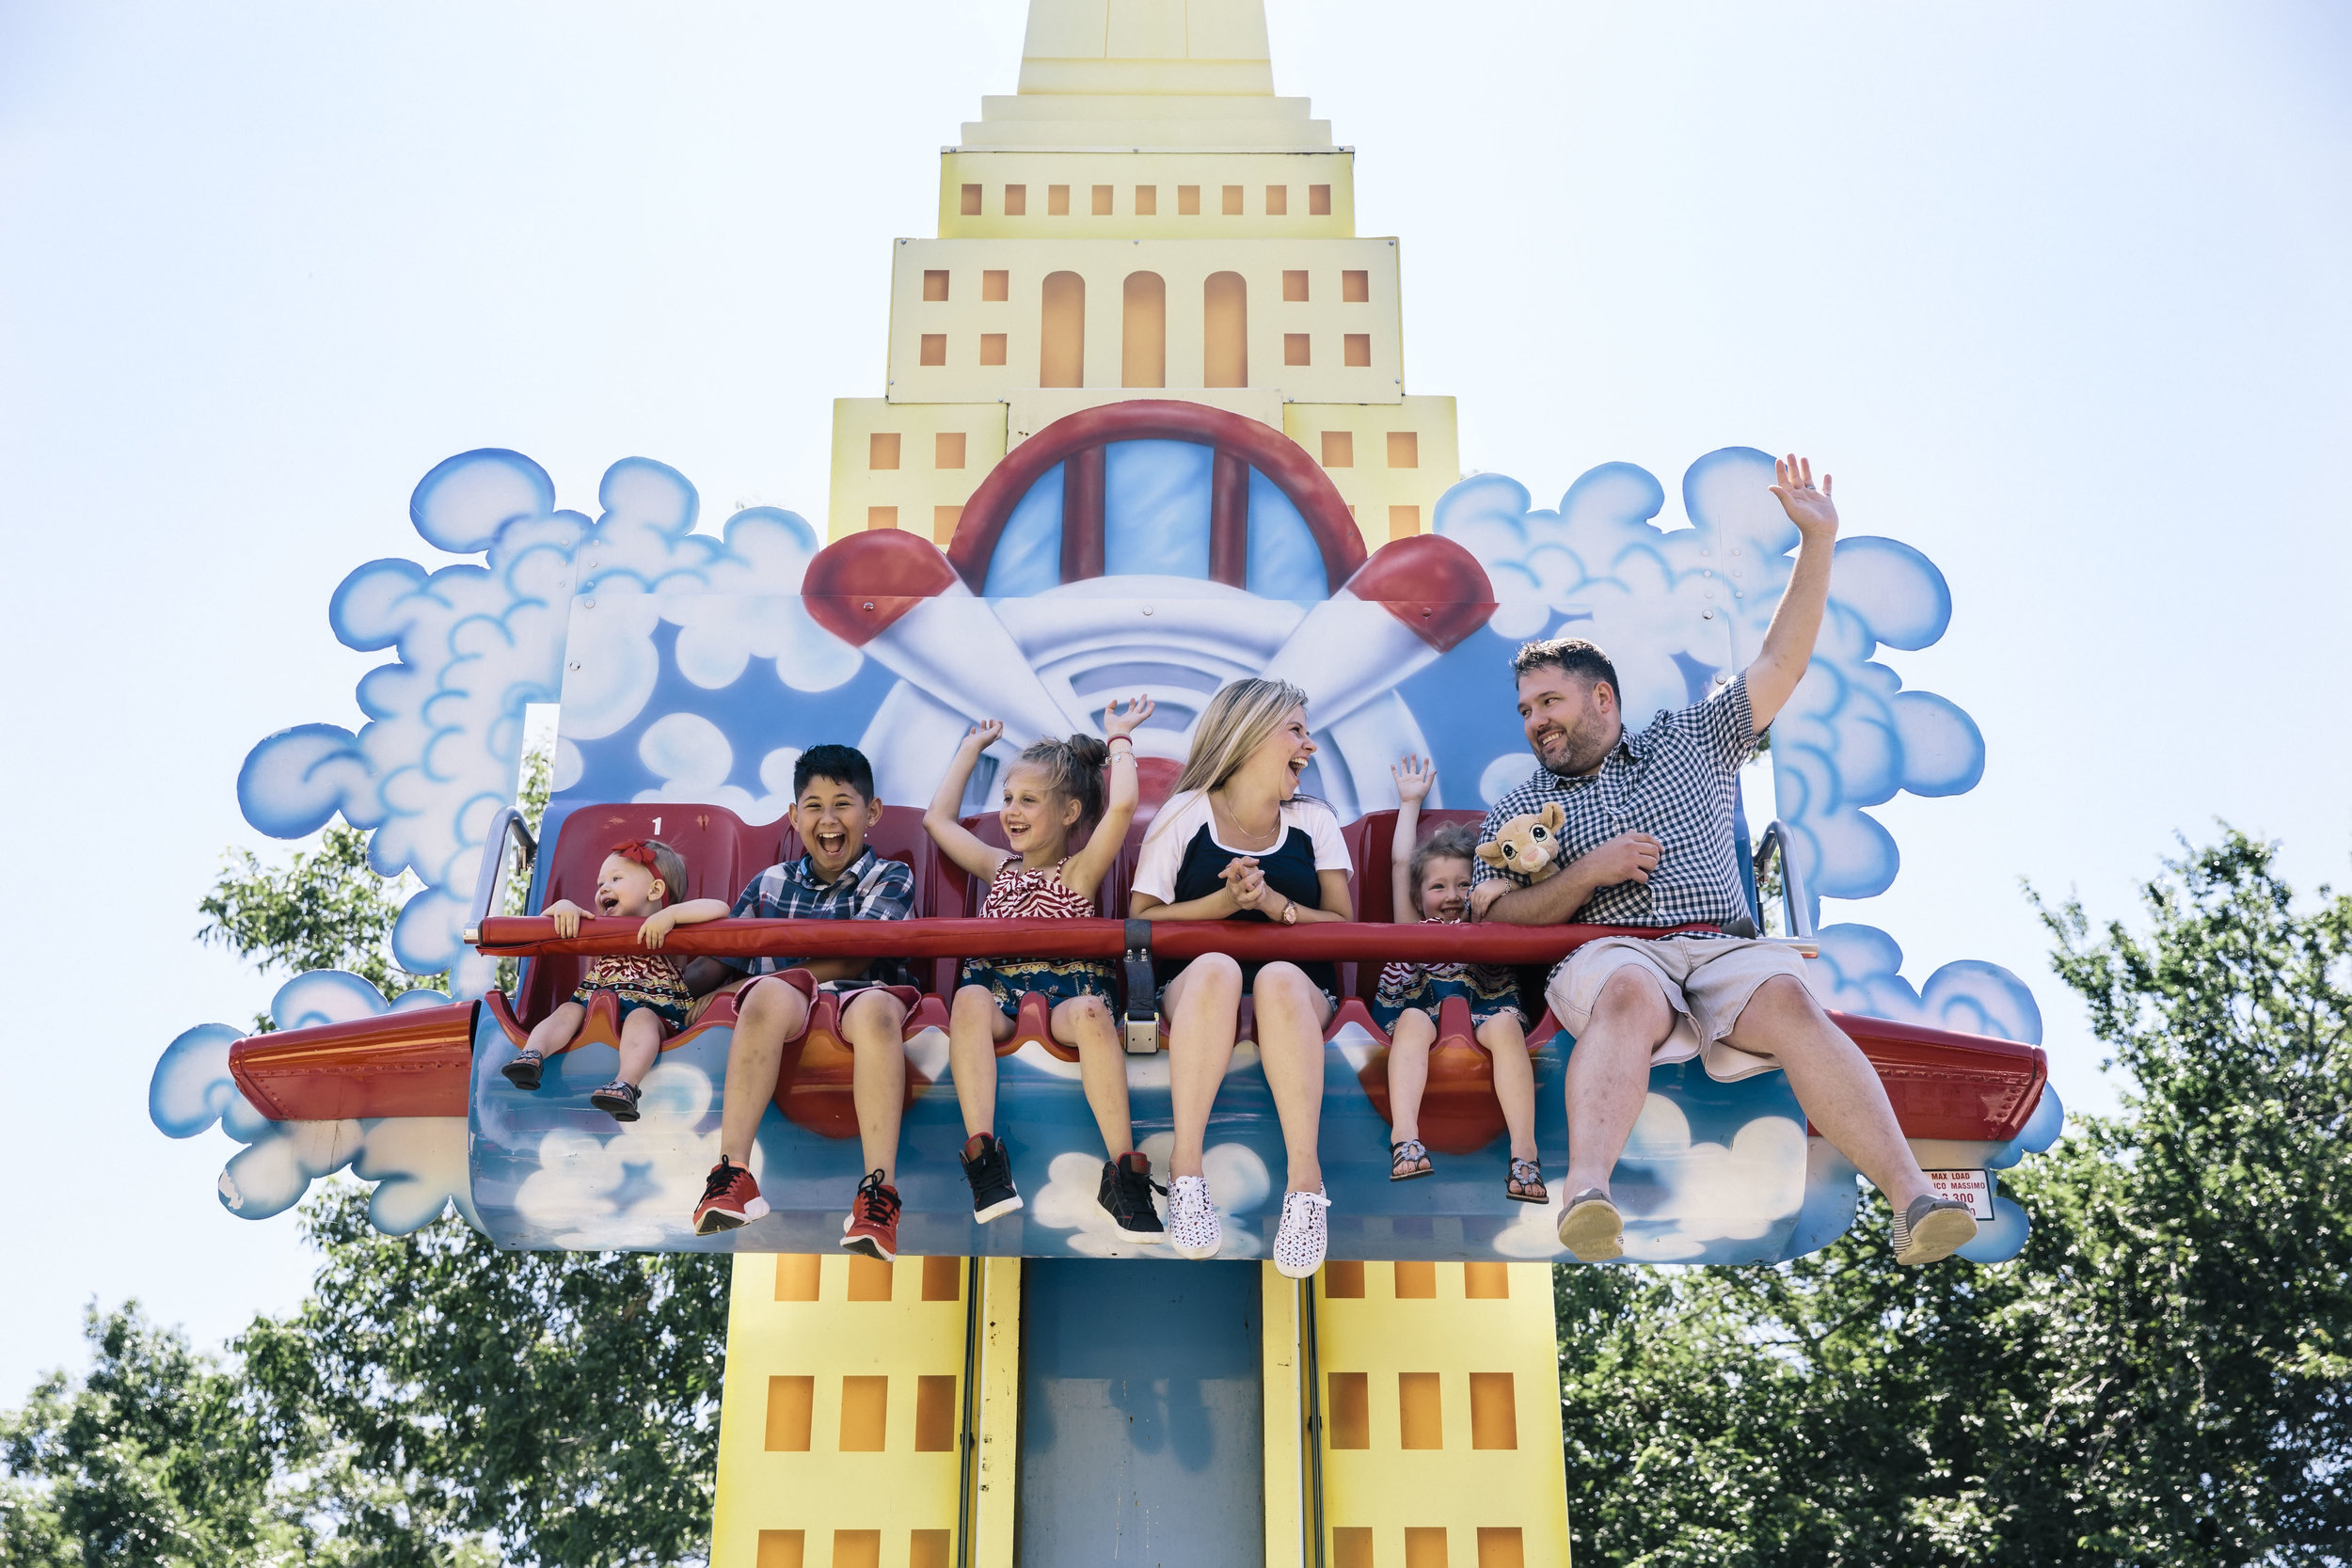 DFW_Six_Flags_Family_Photography (10 of 13).jpg